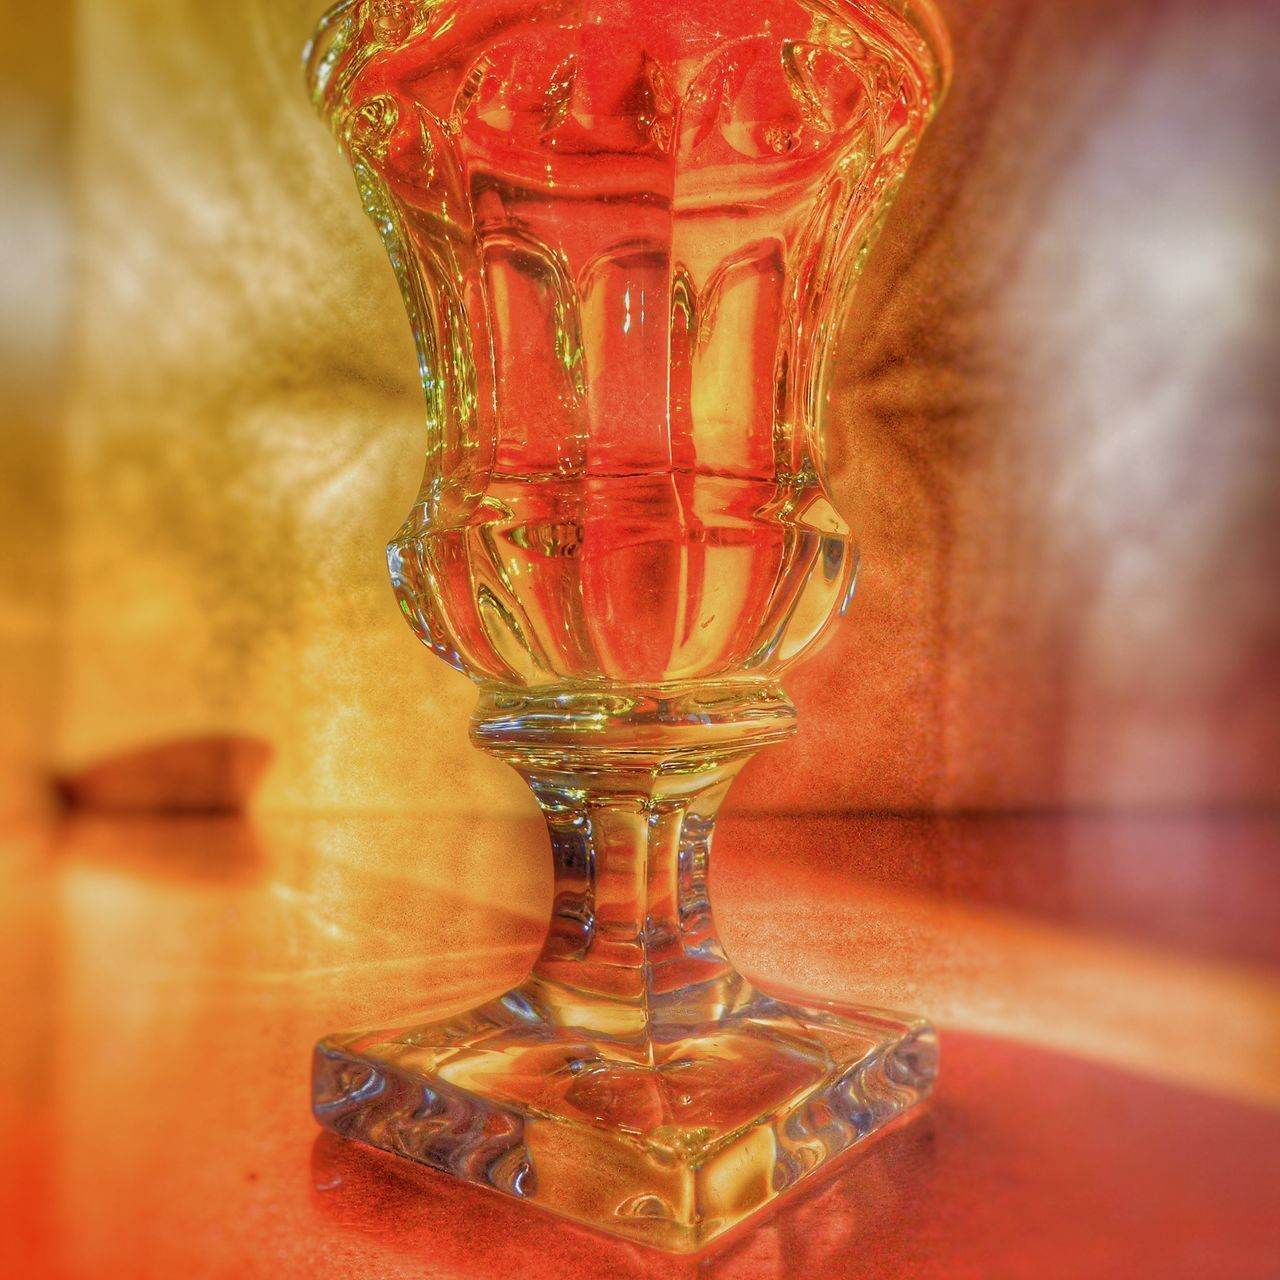 indoors, close-up, glass, red, table, no people, transparent, drinking glass, still life, glass - material, household equipment, refreshment, food and drink, drink, pattern, reflection, freshness, selective focus, design, alcohol, crockery